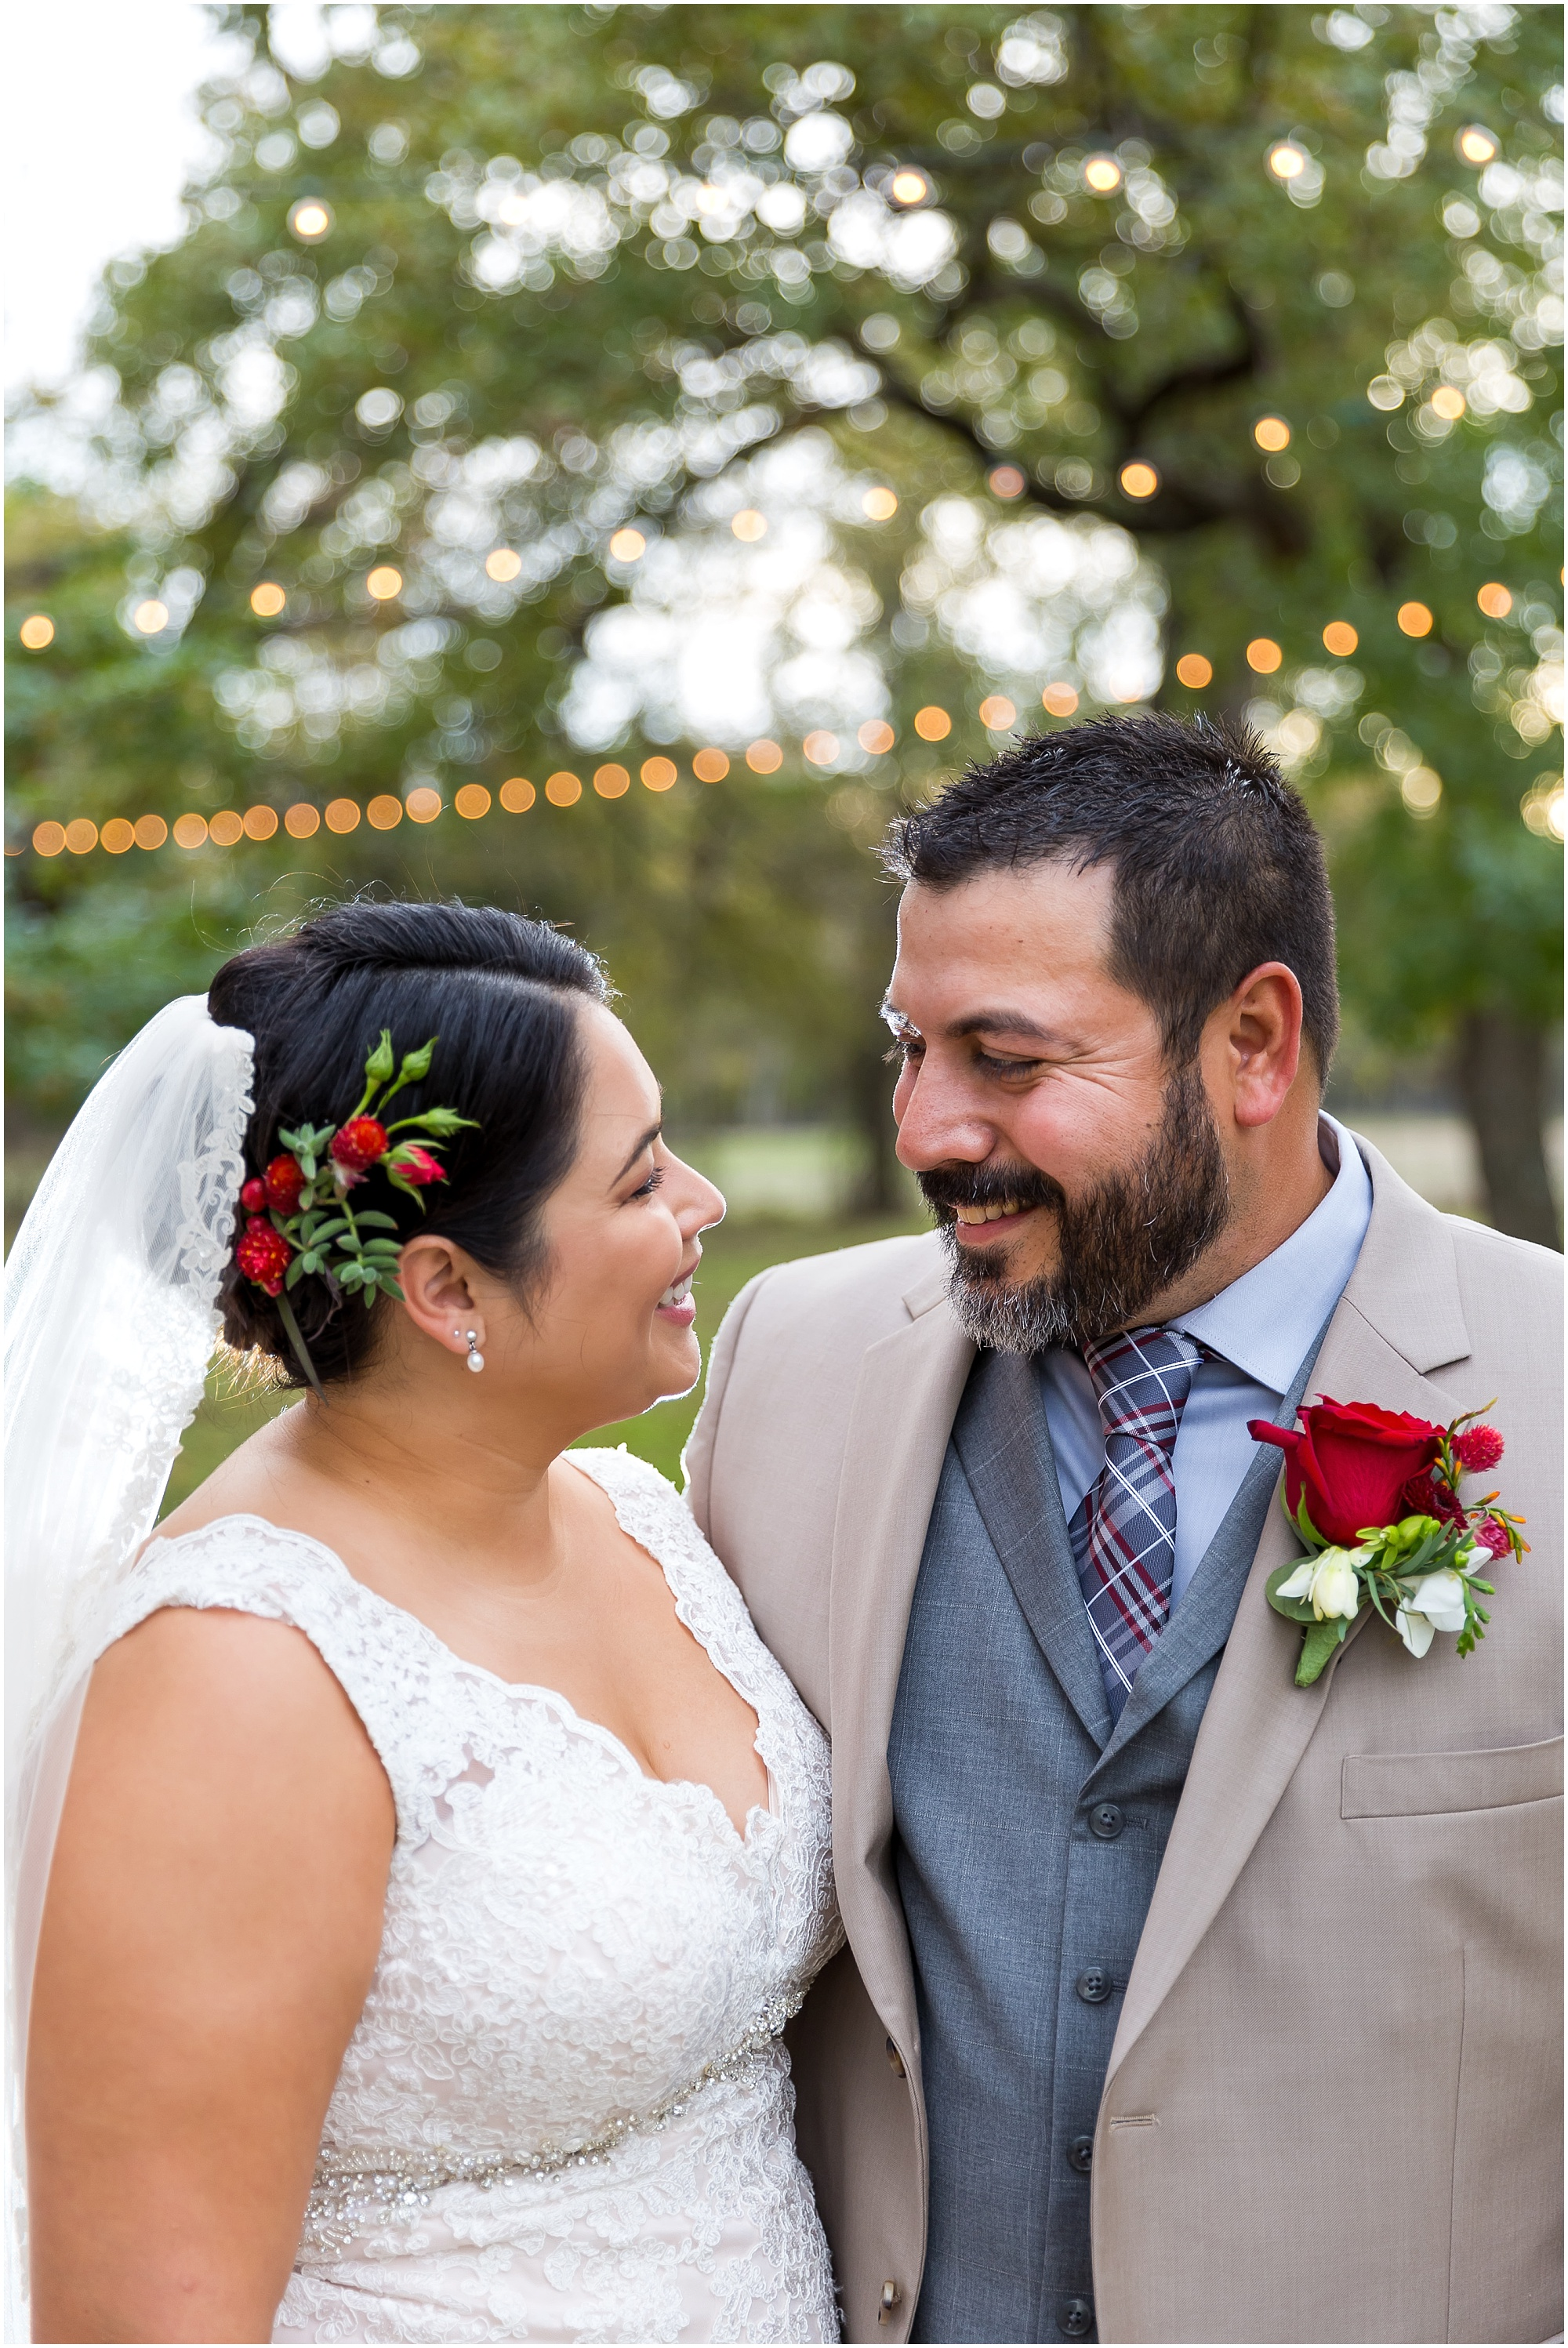 Groom looks lovingly at his new bride - Dove Creek Ranch in Dublin, Texas - Jason & Melaina Photography - www.jasonandmelaina.com